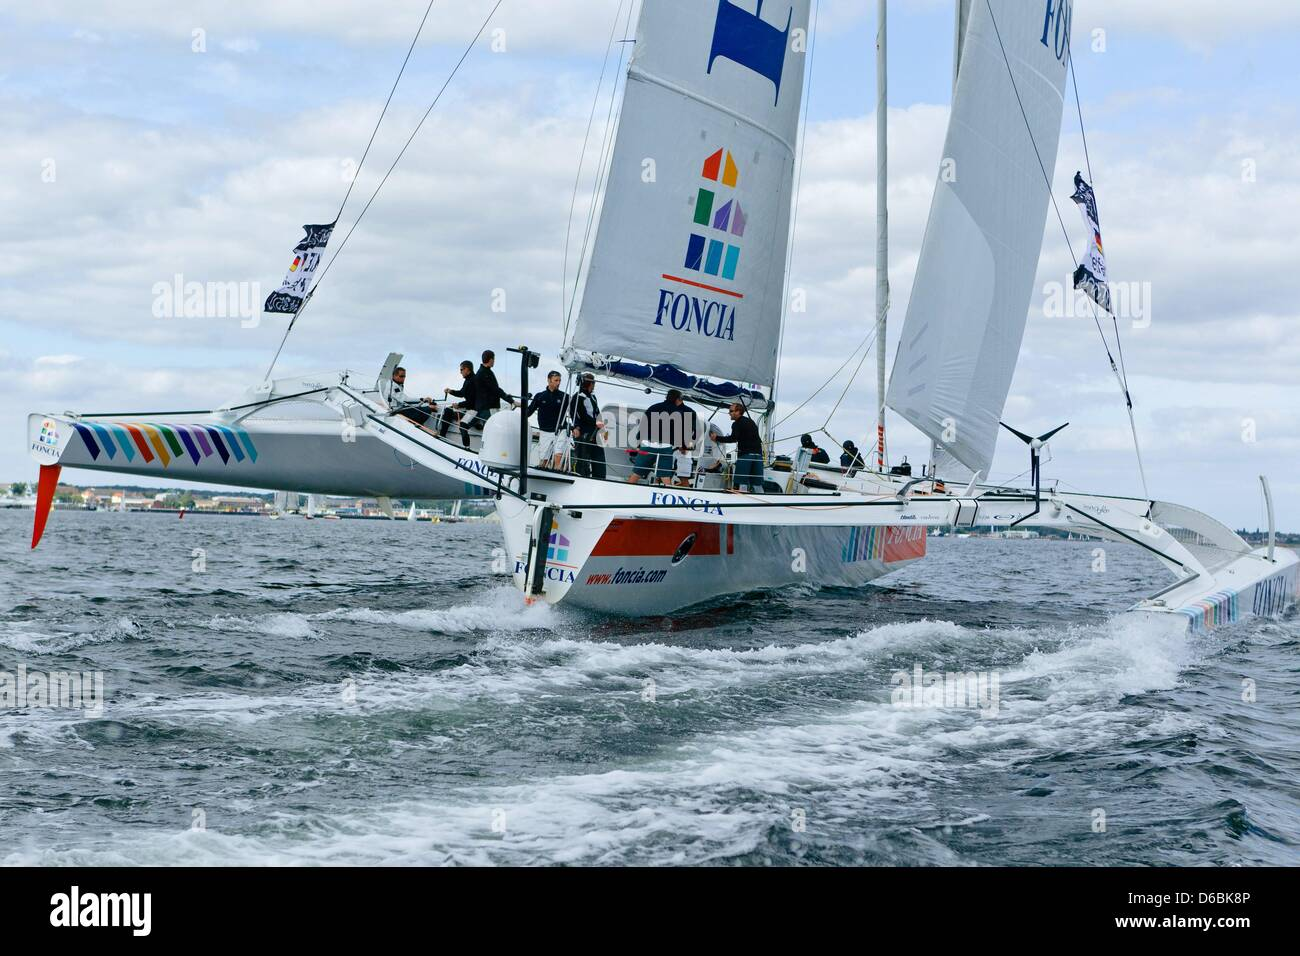 The MOD70 trimaran boat 'Foncia' competes in its fourth race